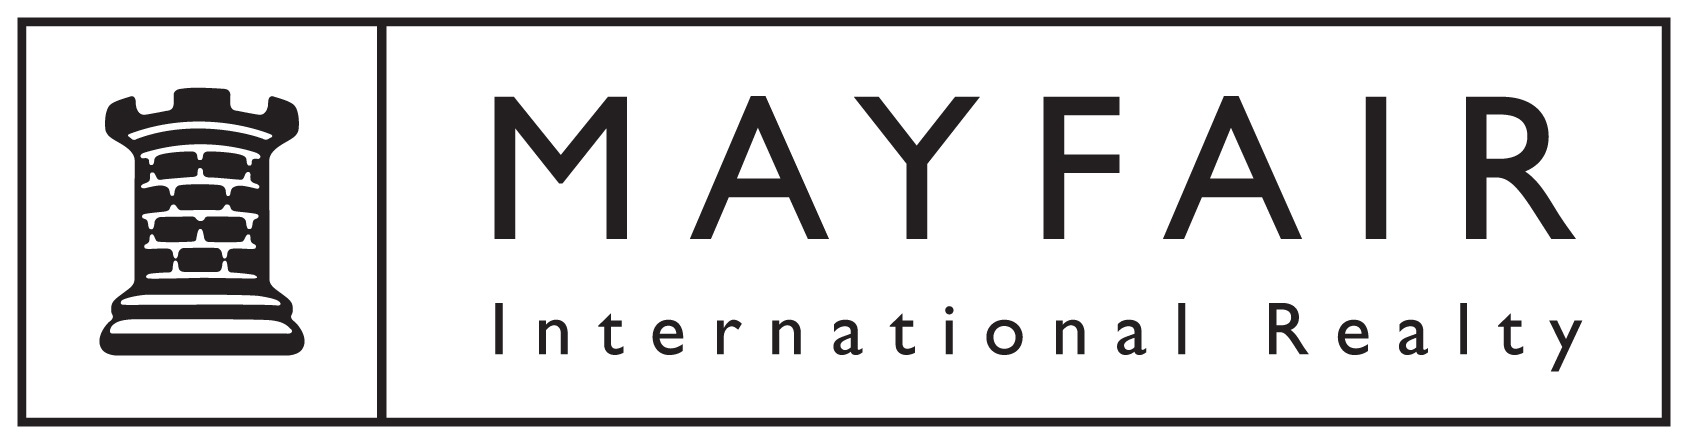 Mayfair International Real Estate